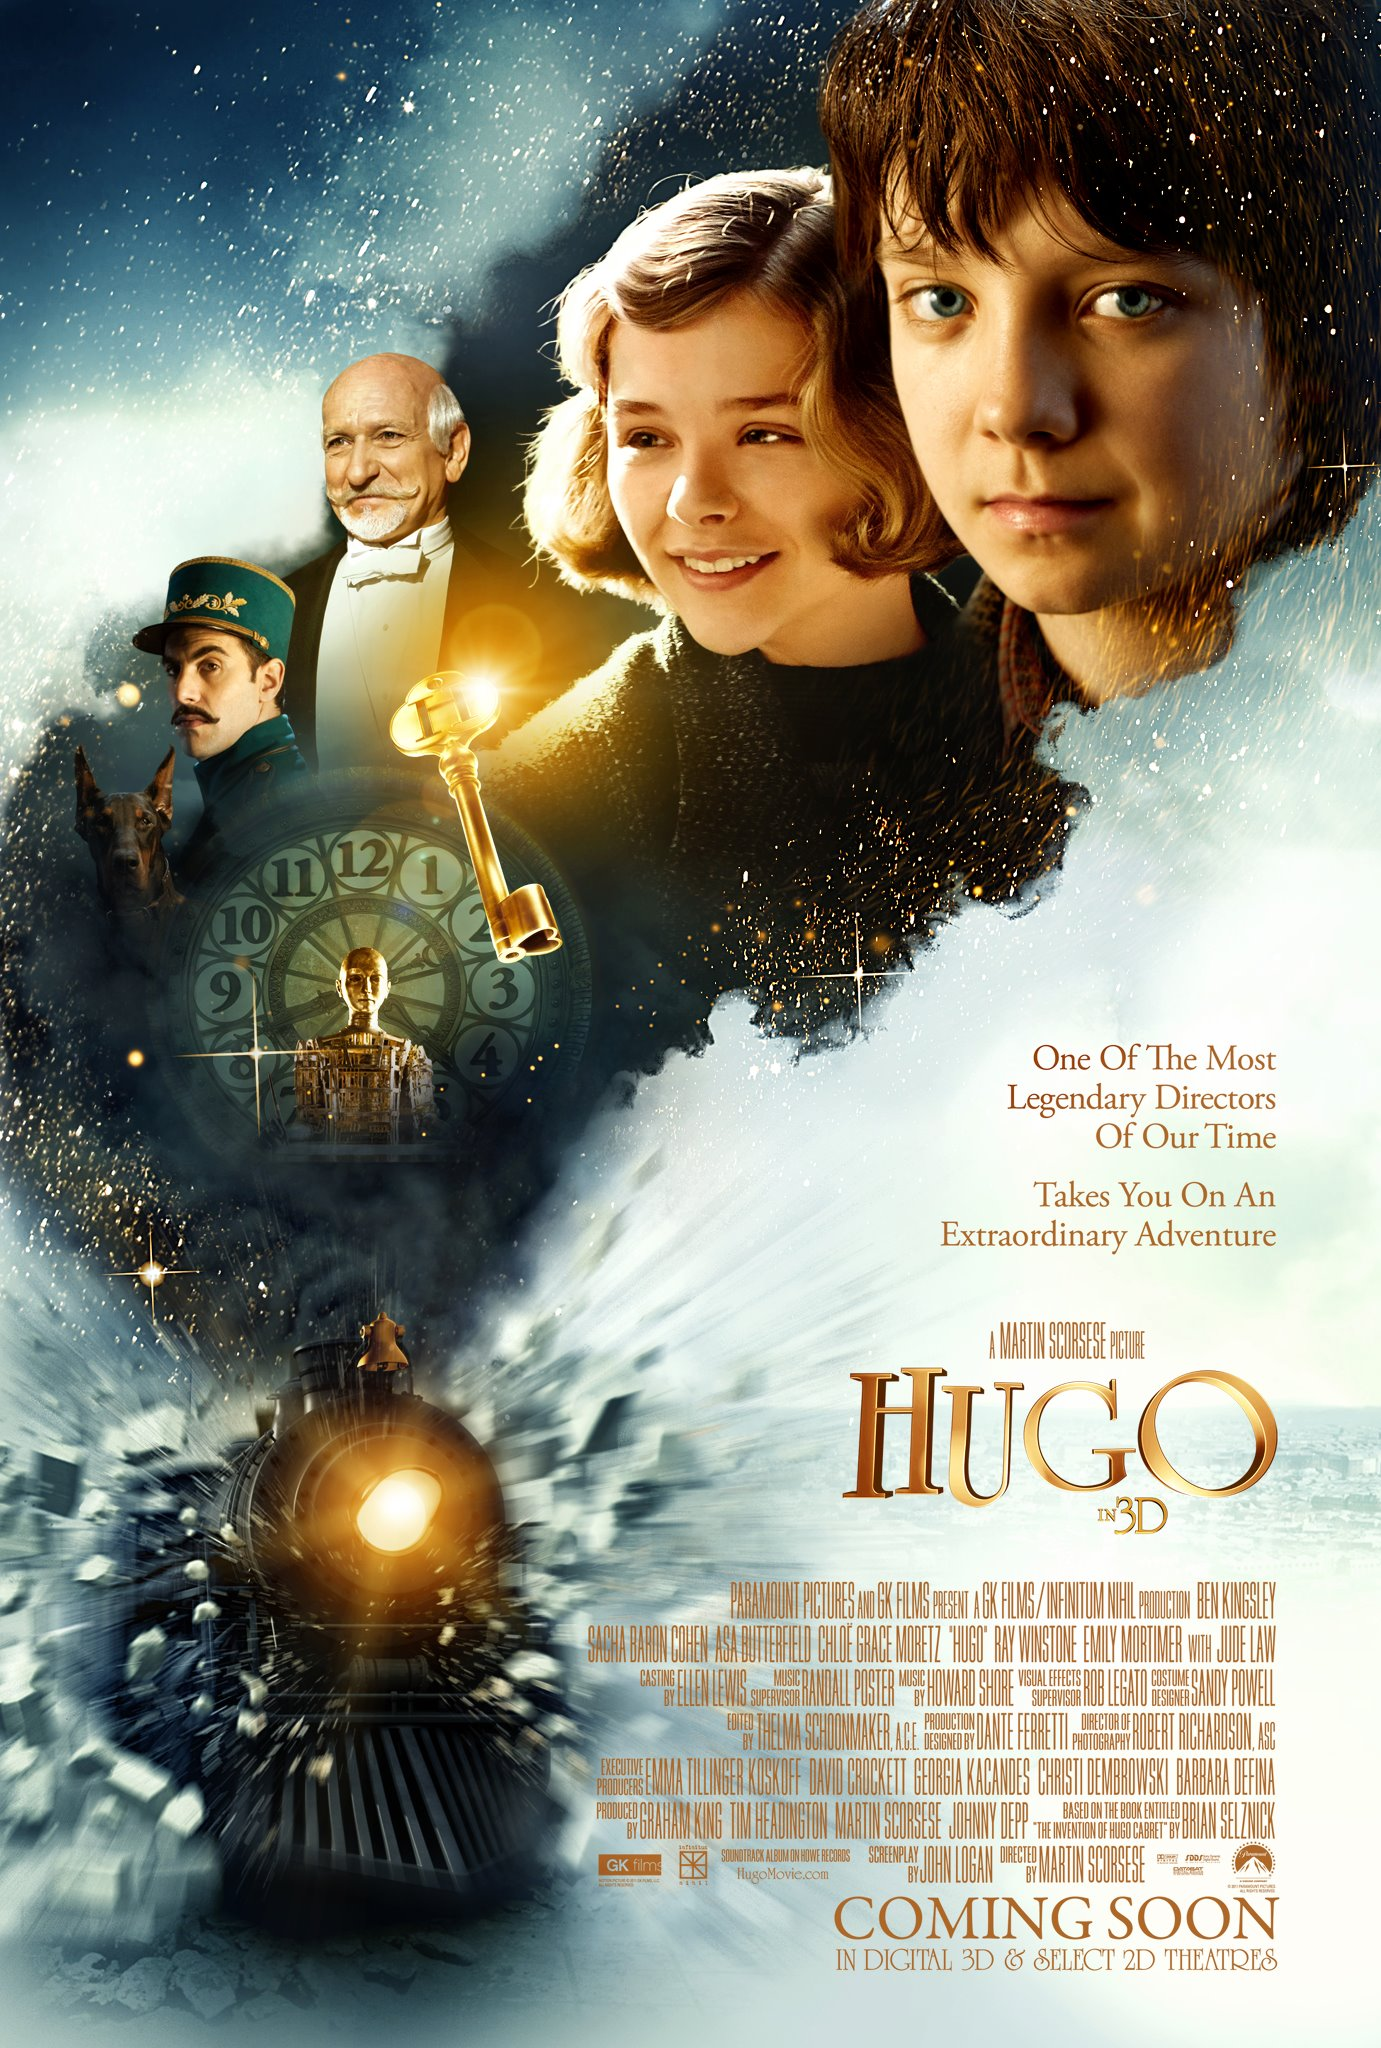 Watch an interview with Martin Scorsese on Hugo – The Reel ... Ben Kingsley